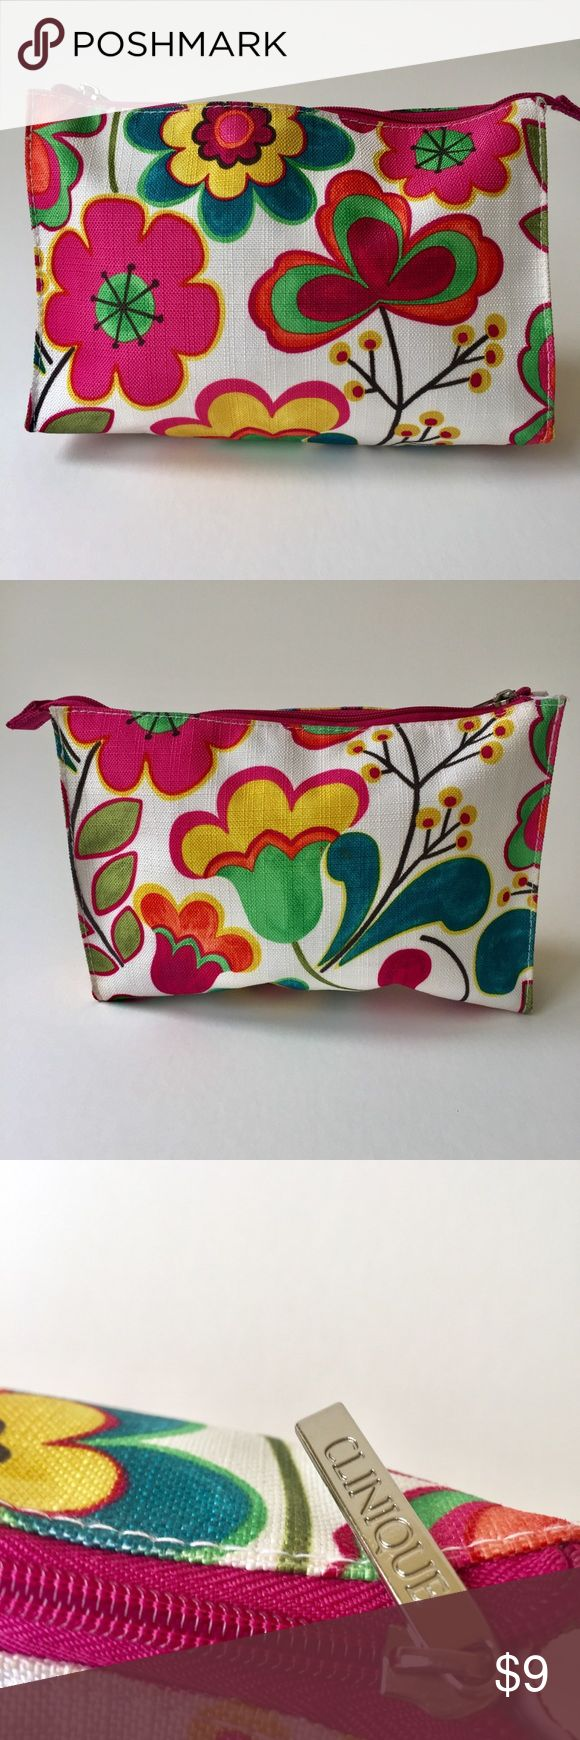 "Clinic Makeup Bag Floral Print Clinique makeup bag, never used.  Textured fabric is 100% Polyester  Zip closure with Clinique logo pull Width 9"" Height 6"" Depth 2"" Bundle with your others likes to save on shipping Clinique Bags Cosmetic Bags & Cases"